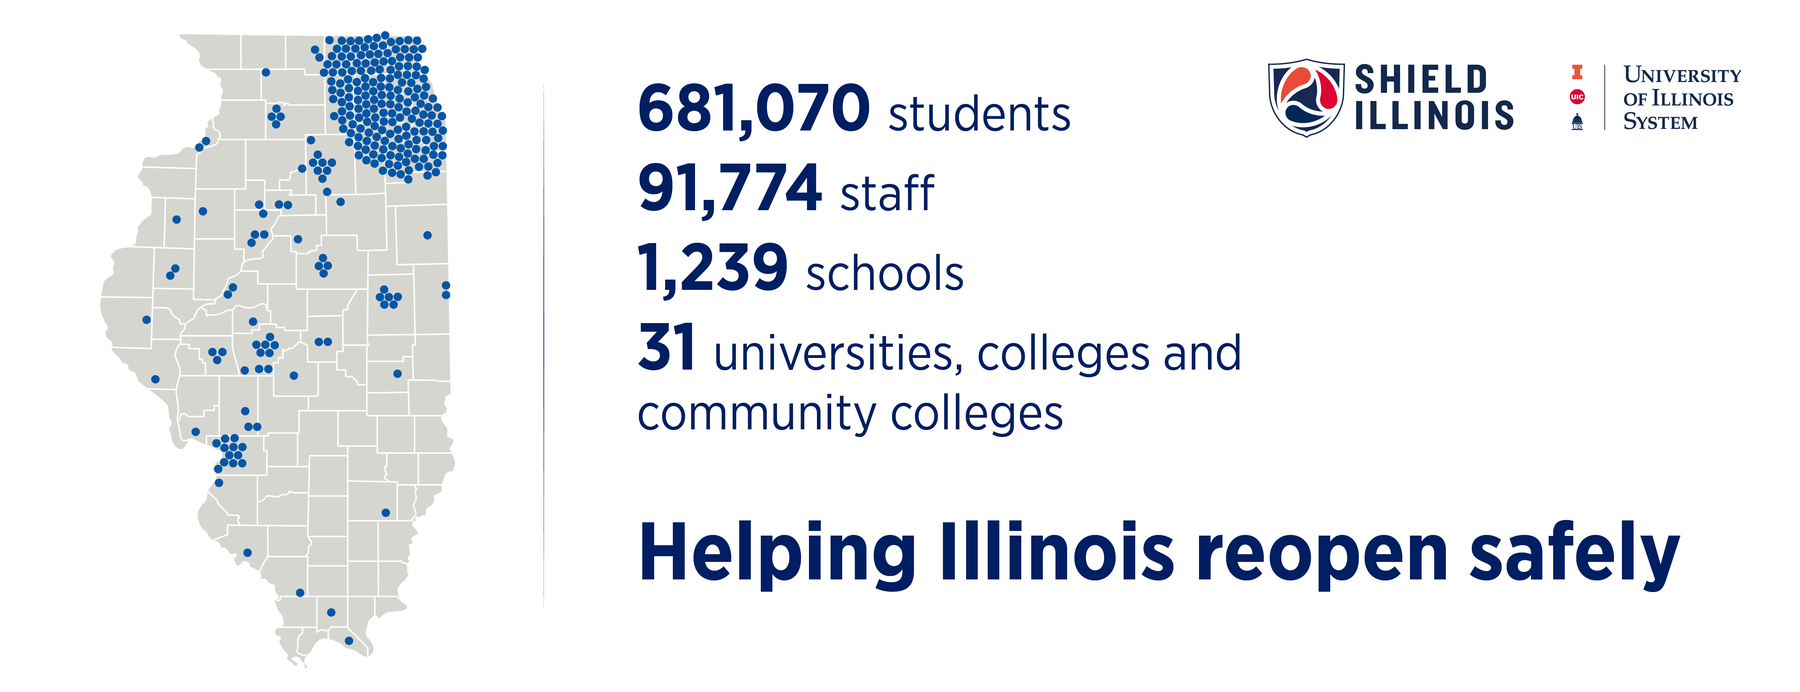 Map of Illinois with plotpoints and 681,070 students; statistics of students, staff and schools served; Helping Illinois reopen safely